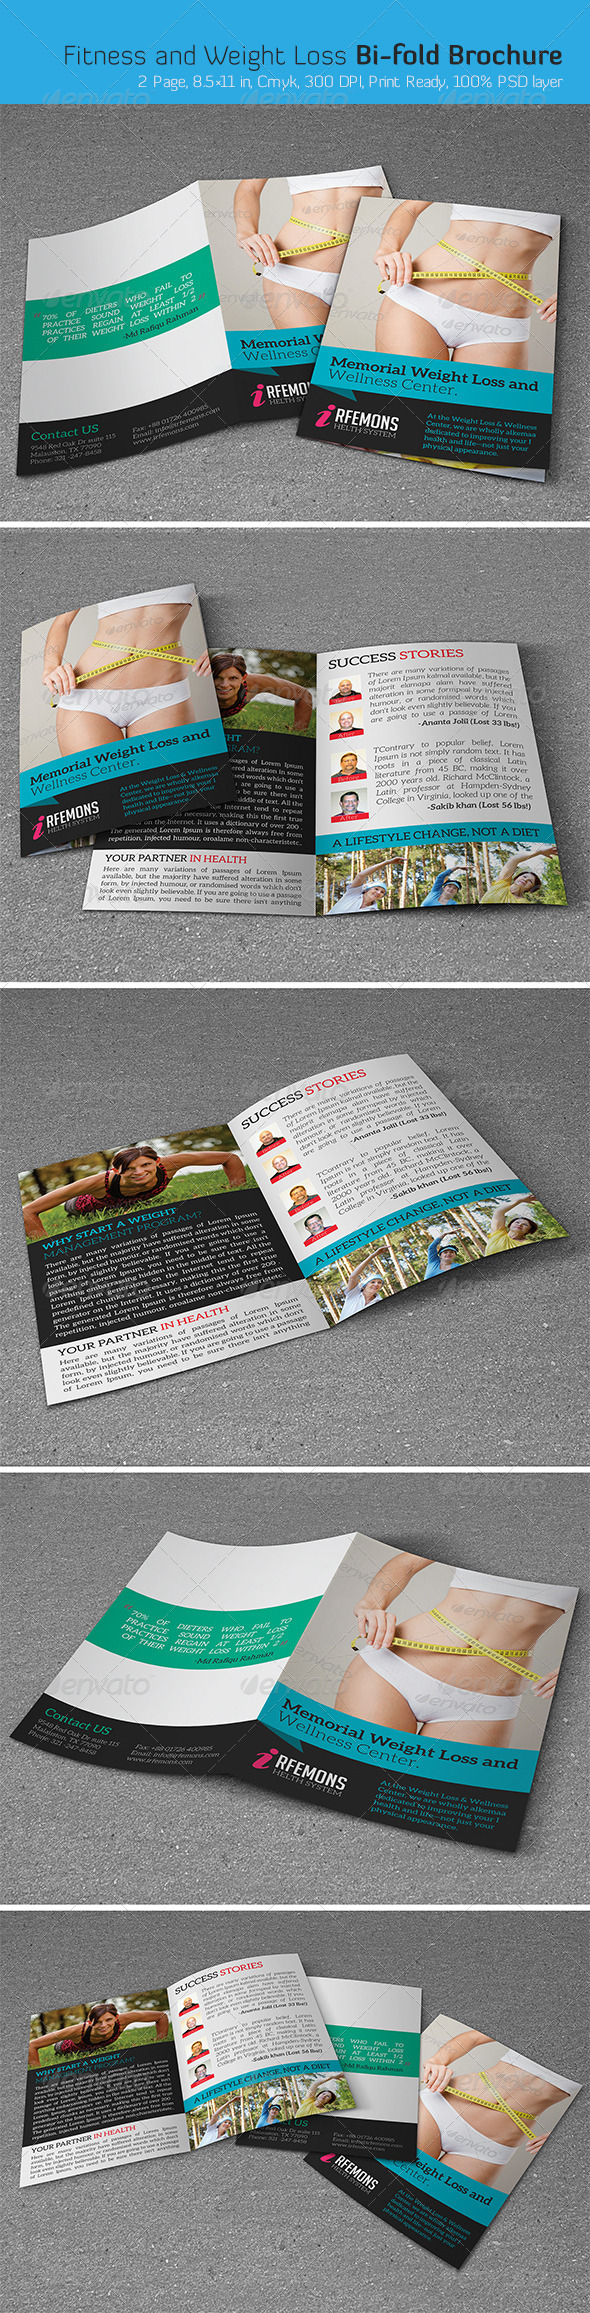 GraphicRiver Fitness and Weight Loss Bi-fold Brochure 6643204